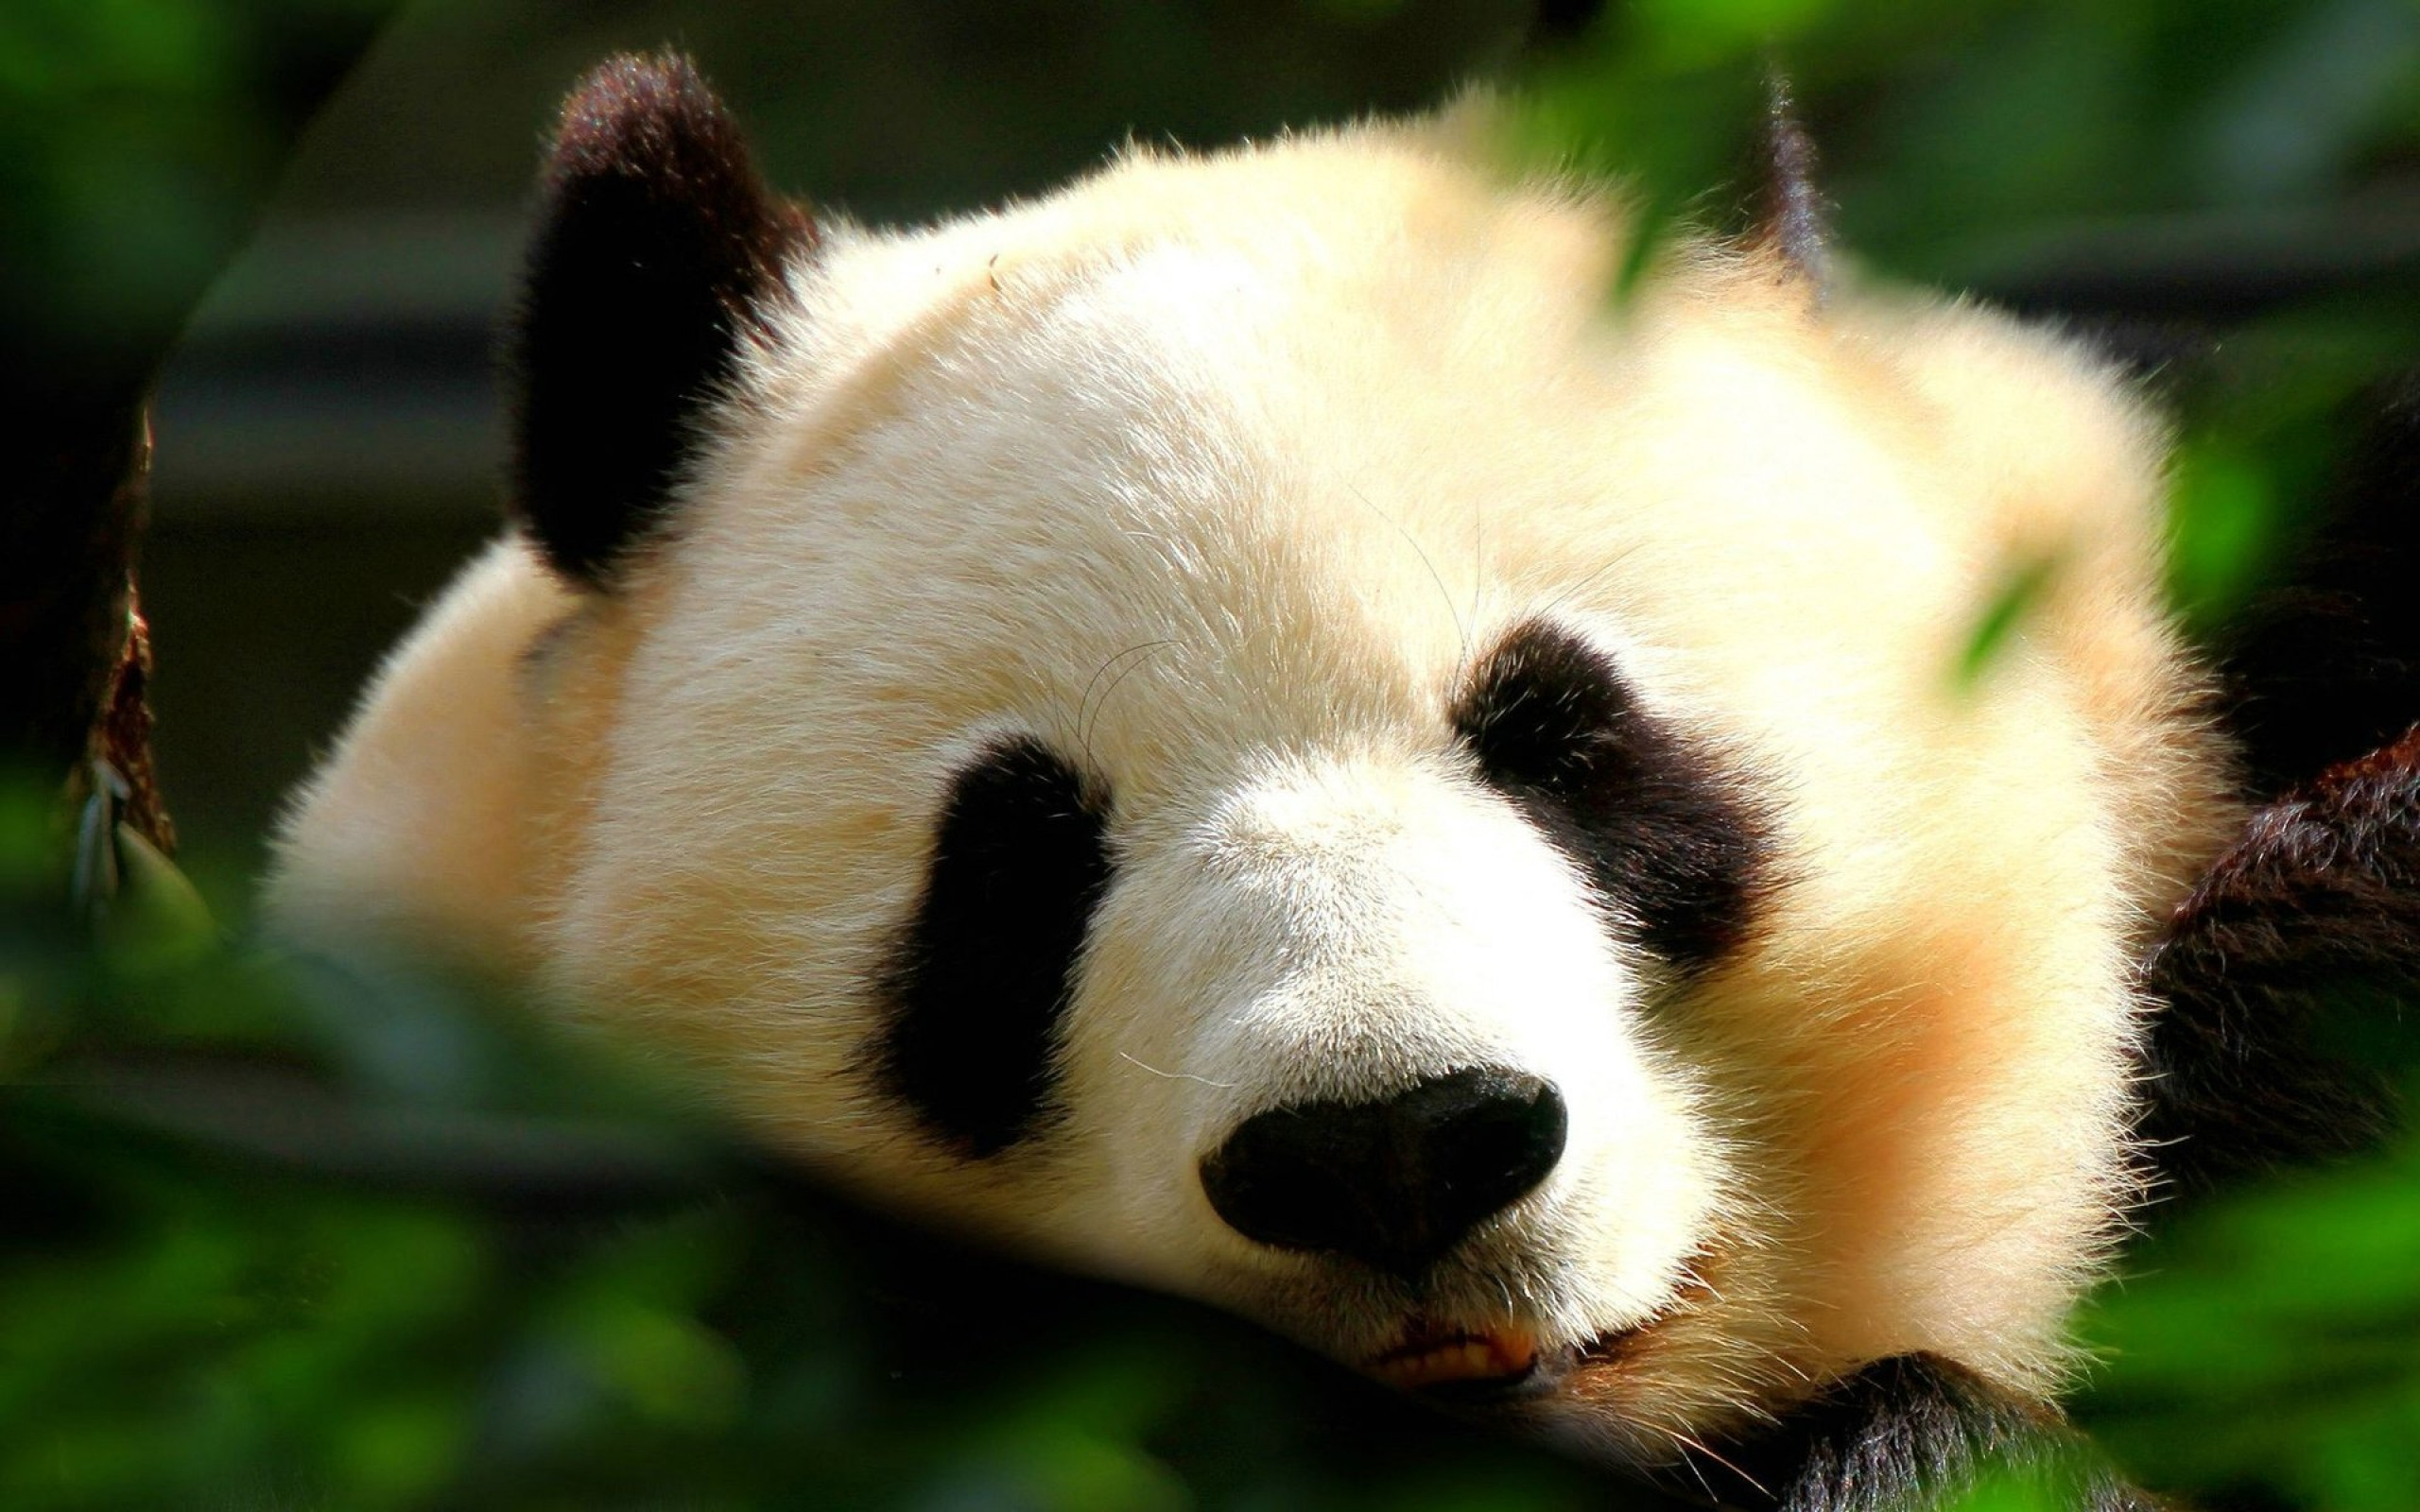 Panda wallpapers images photos pictures backgrounds - Animal wallpaper hd ...